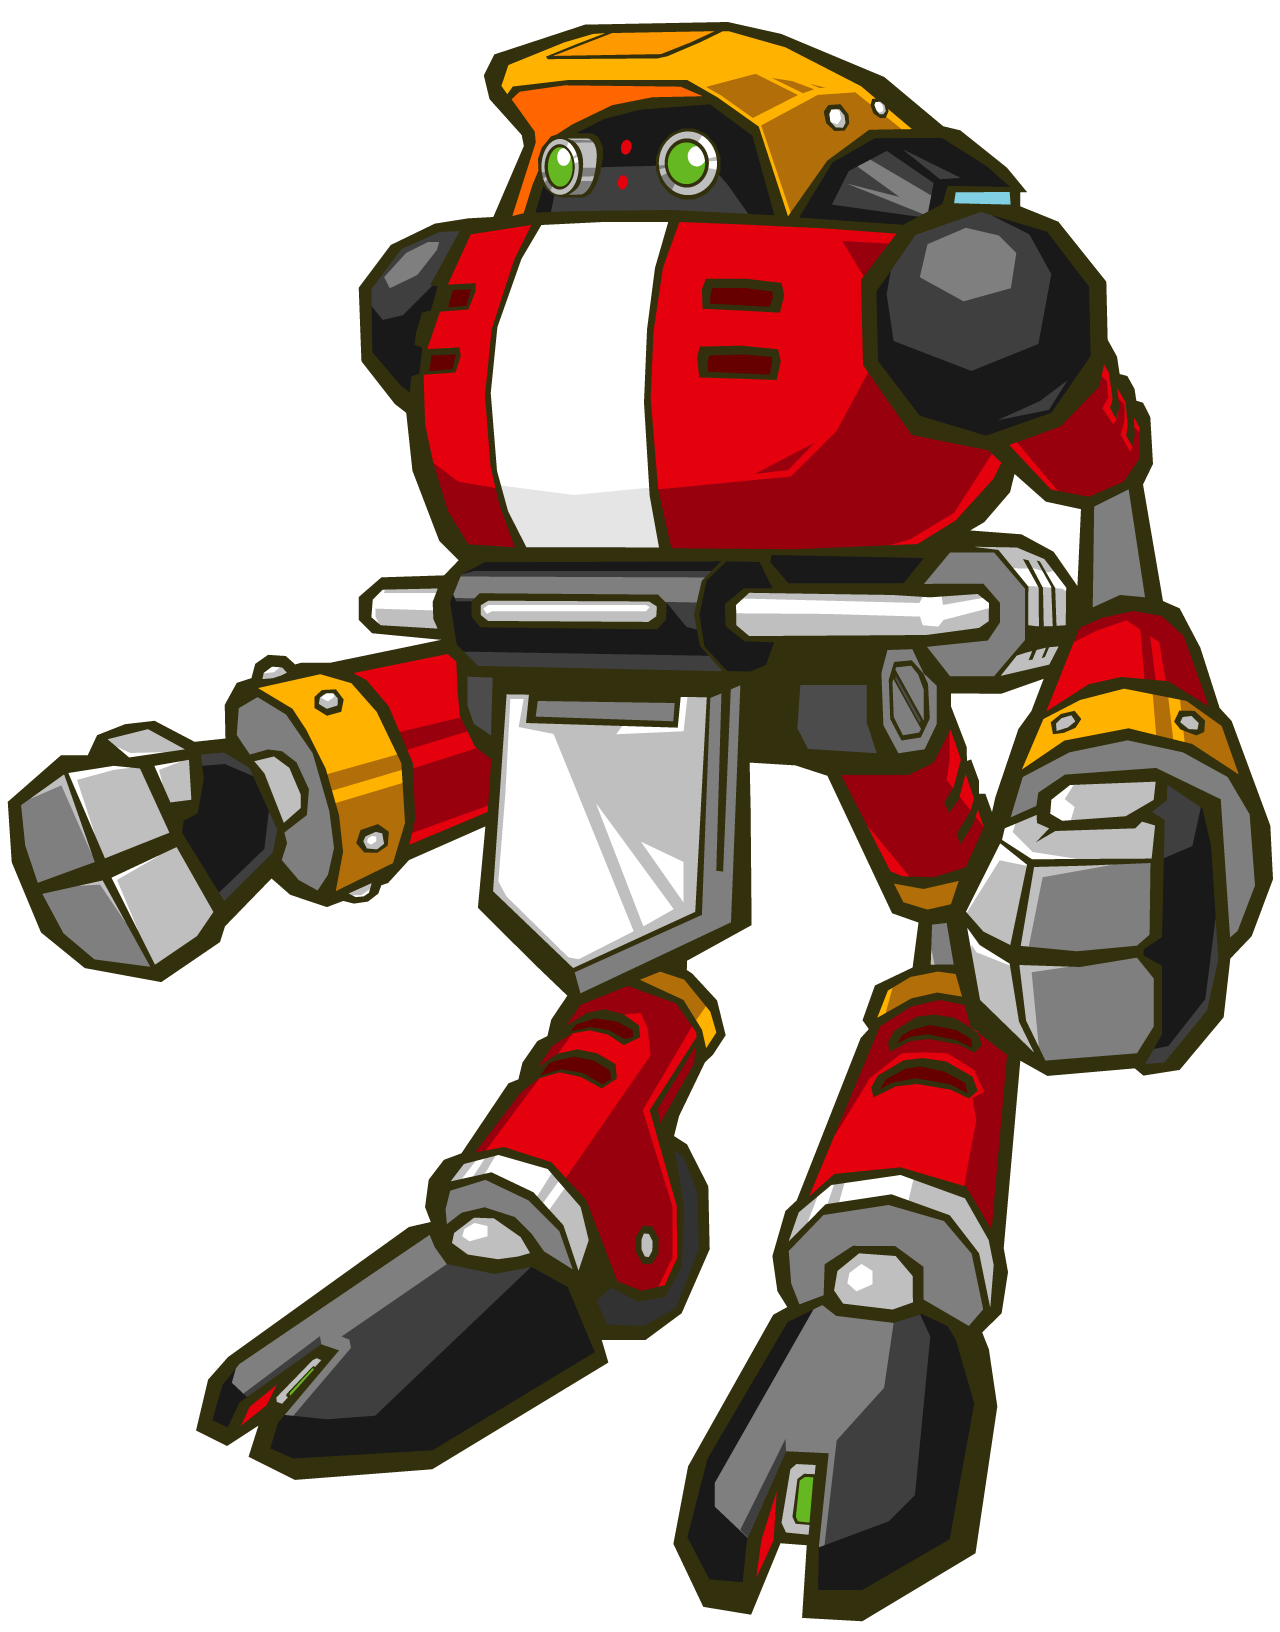 Gamma sonic news network. Clipart explosion chaos